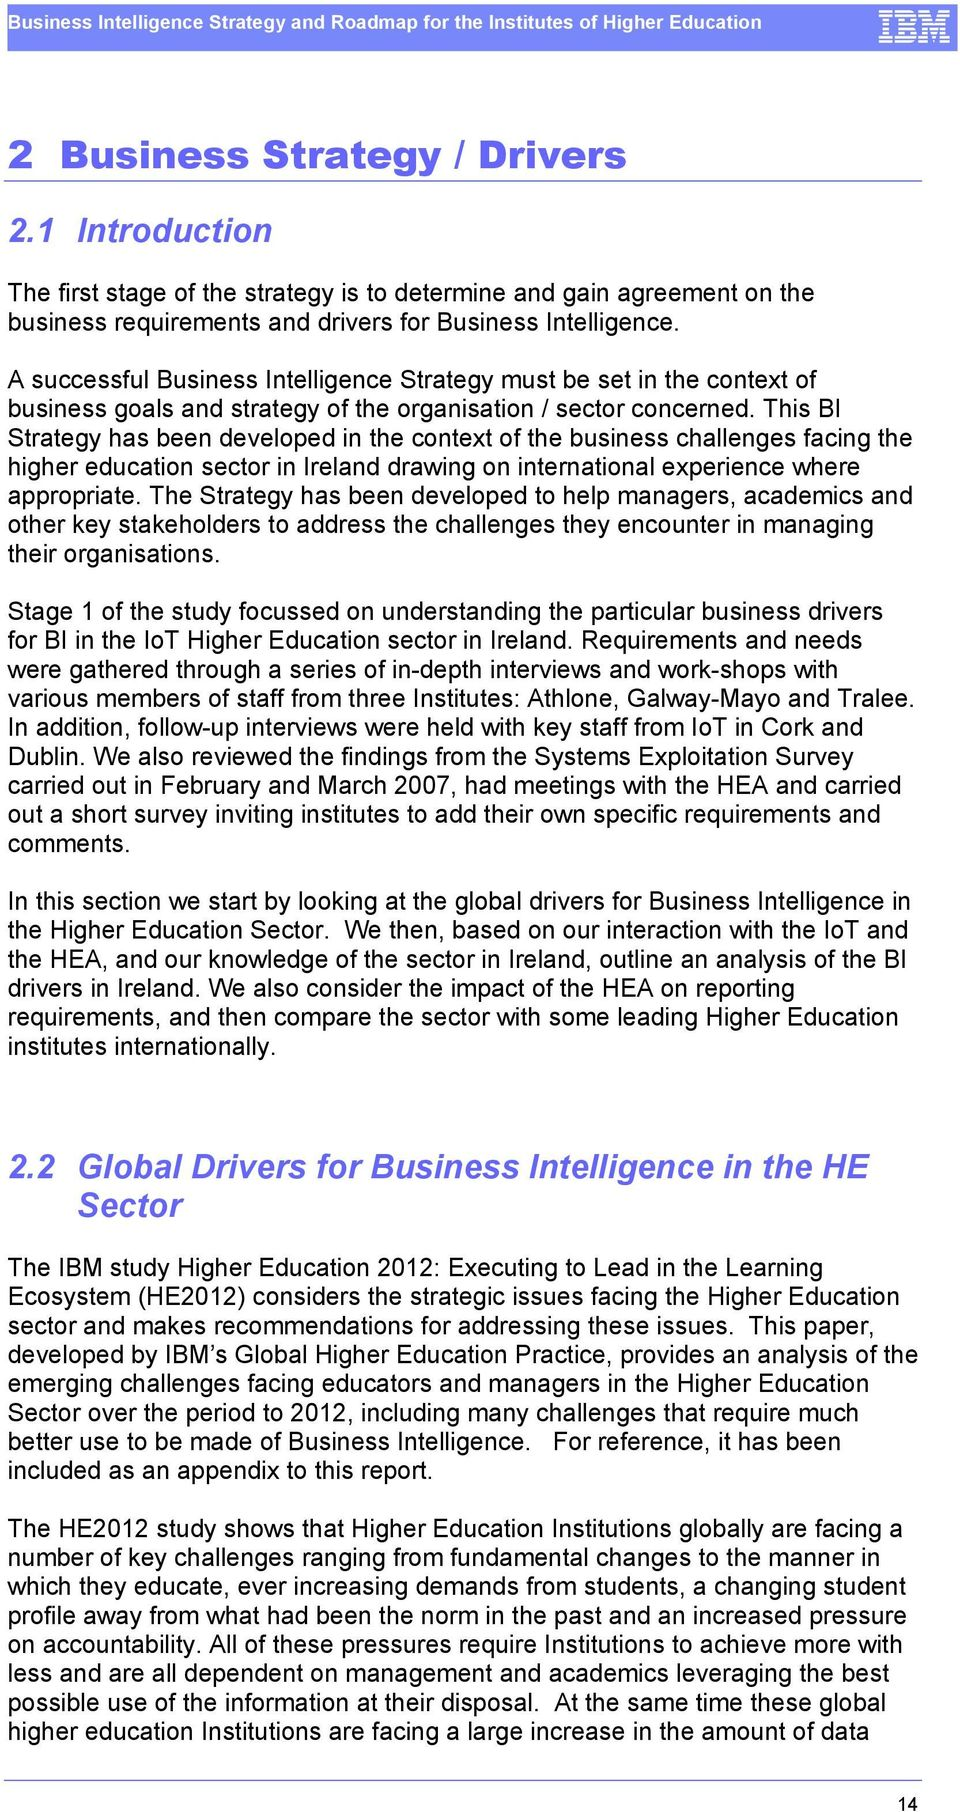 This BI Strategy has been developed in the context of the business challenges facing the higher education sector in Ireland drawing on international experience where appropriate.